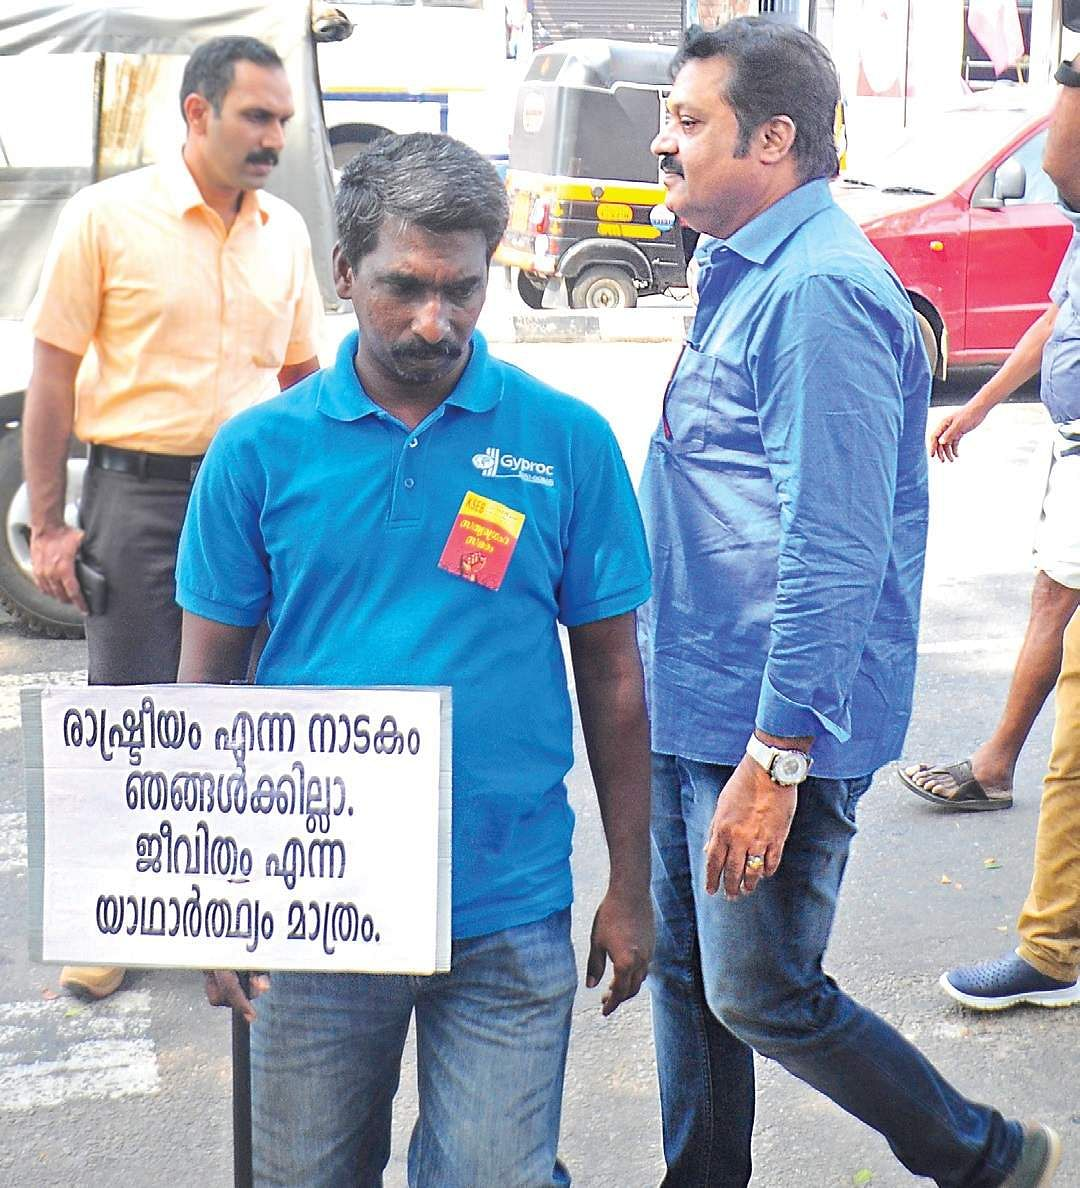 Postings govt collects details of vacancies the new indian express suresh gopi mp right walks past a kseb mazdoor rank holder who was protesting in front of the secretariat demanding extension of the rank list validity in thecheapjerseys Choice Image